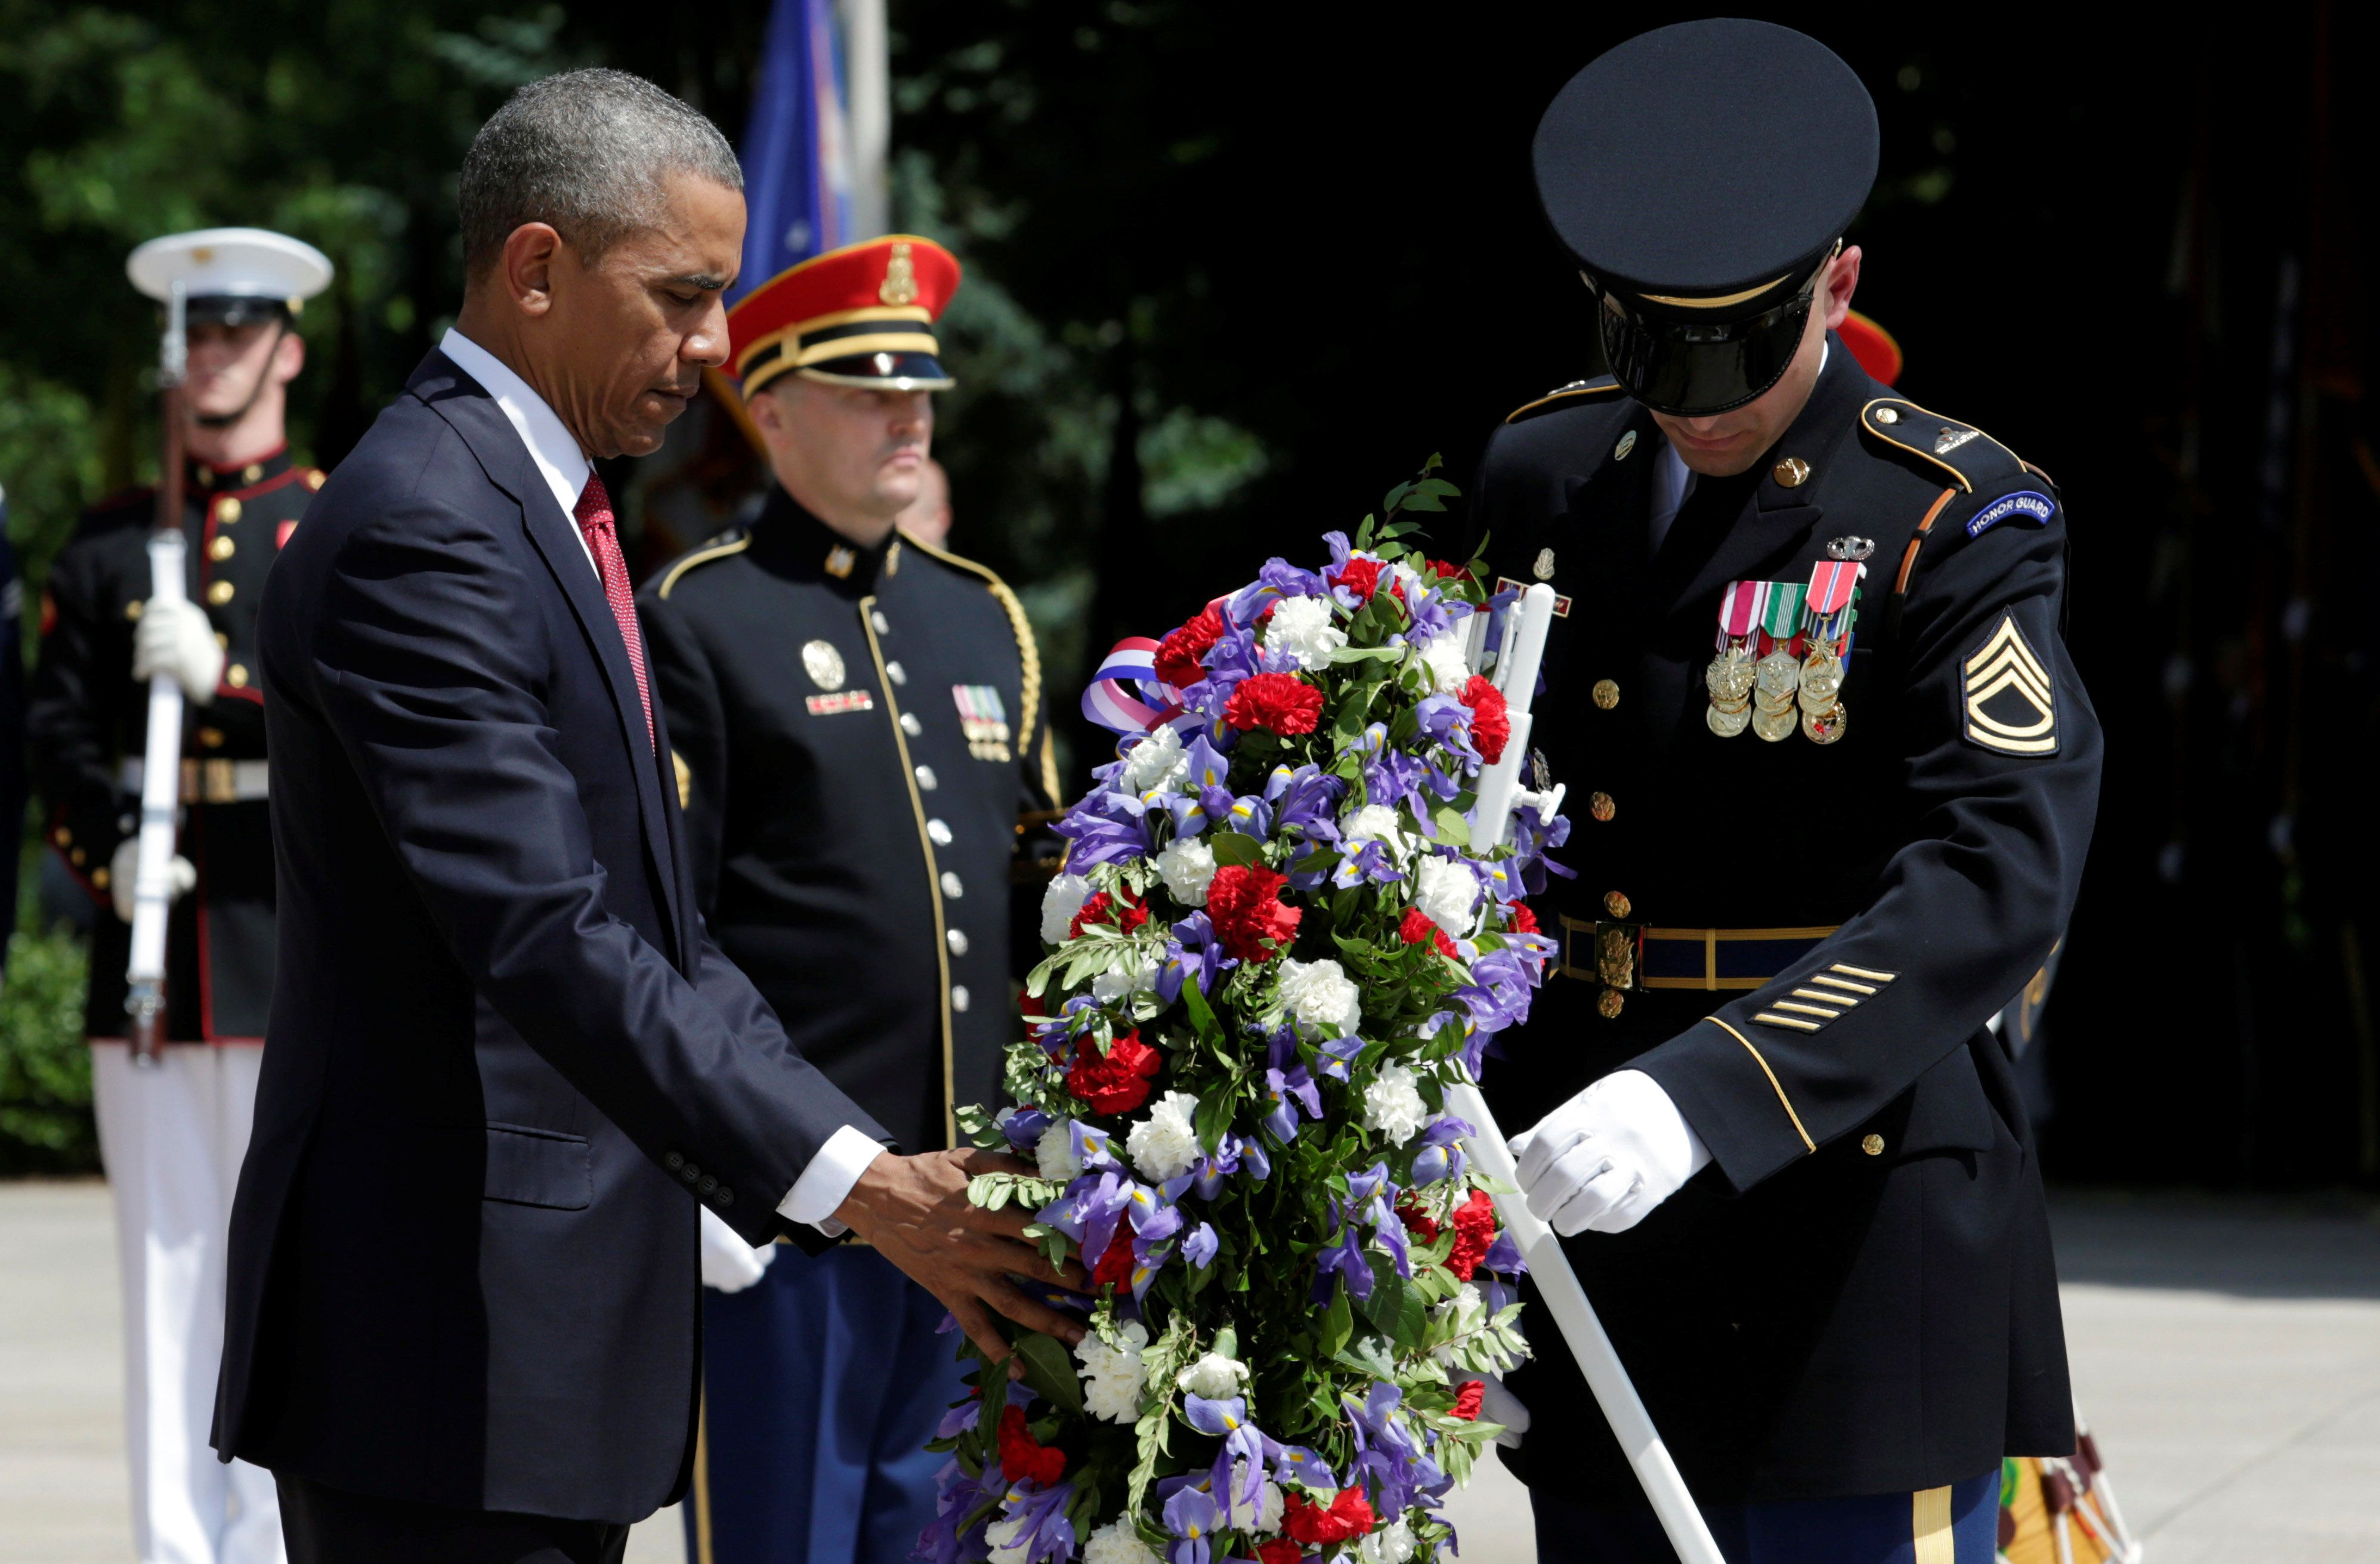 U.S. President Barack Obama lays a wreath at the Tomb of the Unknown Soldier during the Memorial Day observance at Arlington National Cemetery in Washington, U.S., May 30, 2016. REUTERS/Yuri Gripas